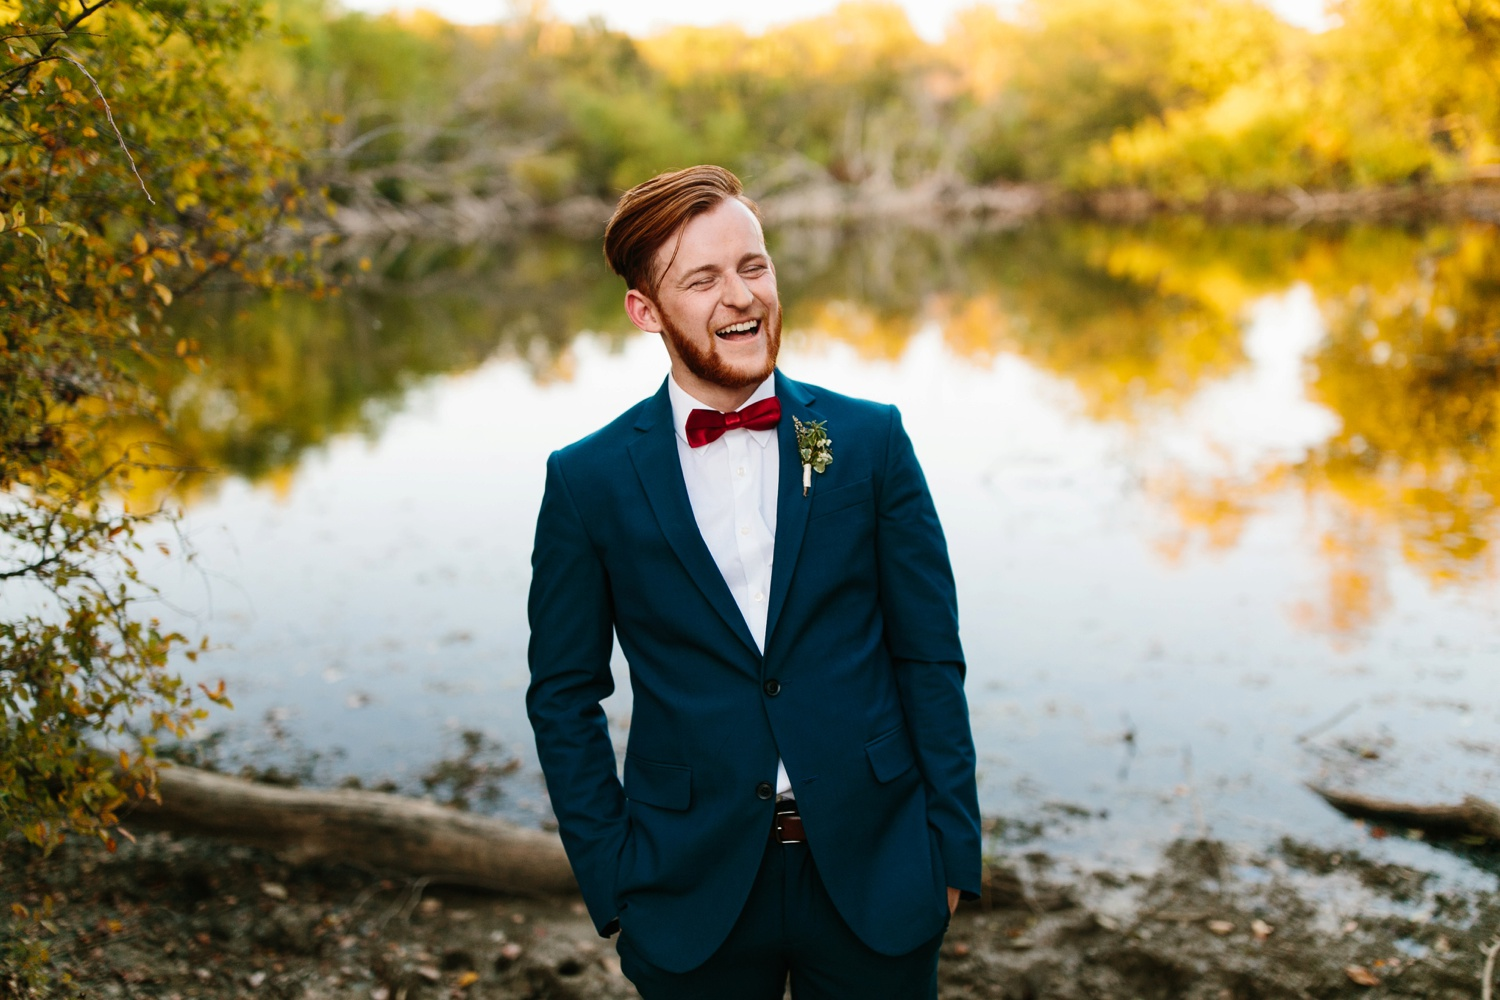 Grant + Lysette | a vibrant, deep burgundy and navy, and mixed metals wedding at Hidden Pines Chapel by North Texas Wedding Photographer Rachel Meagan Photography 240